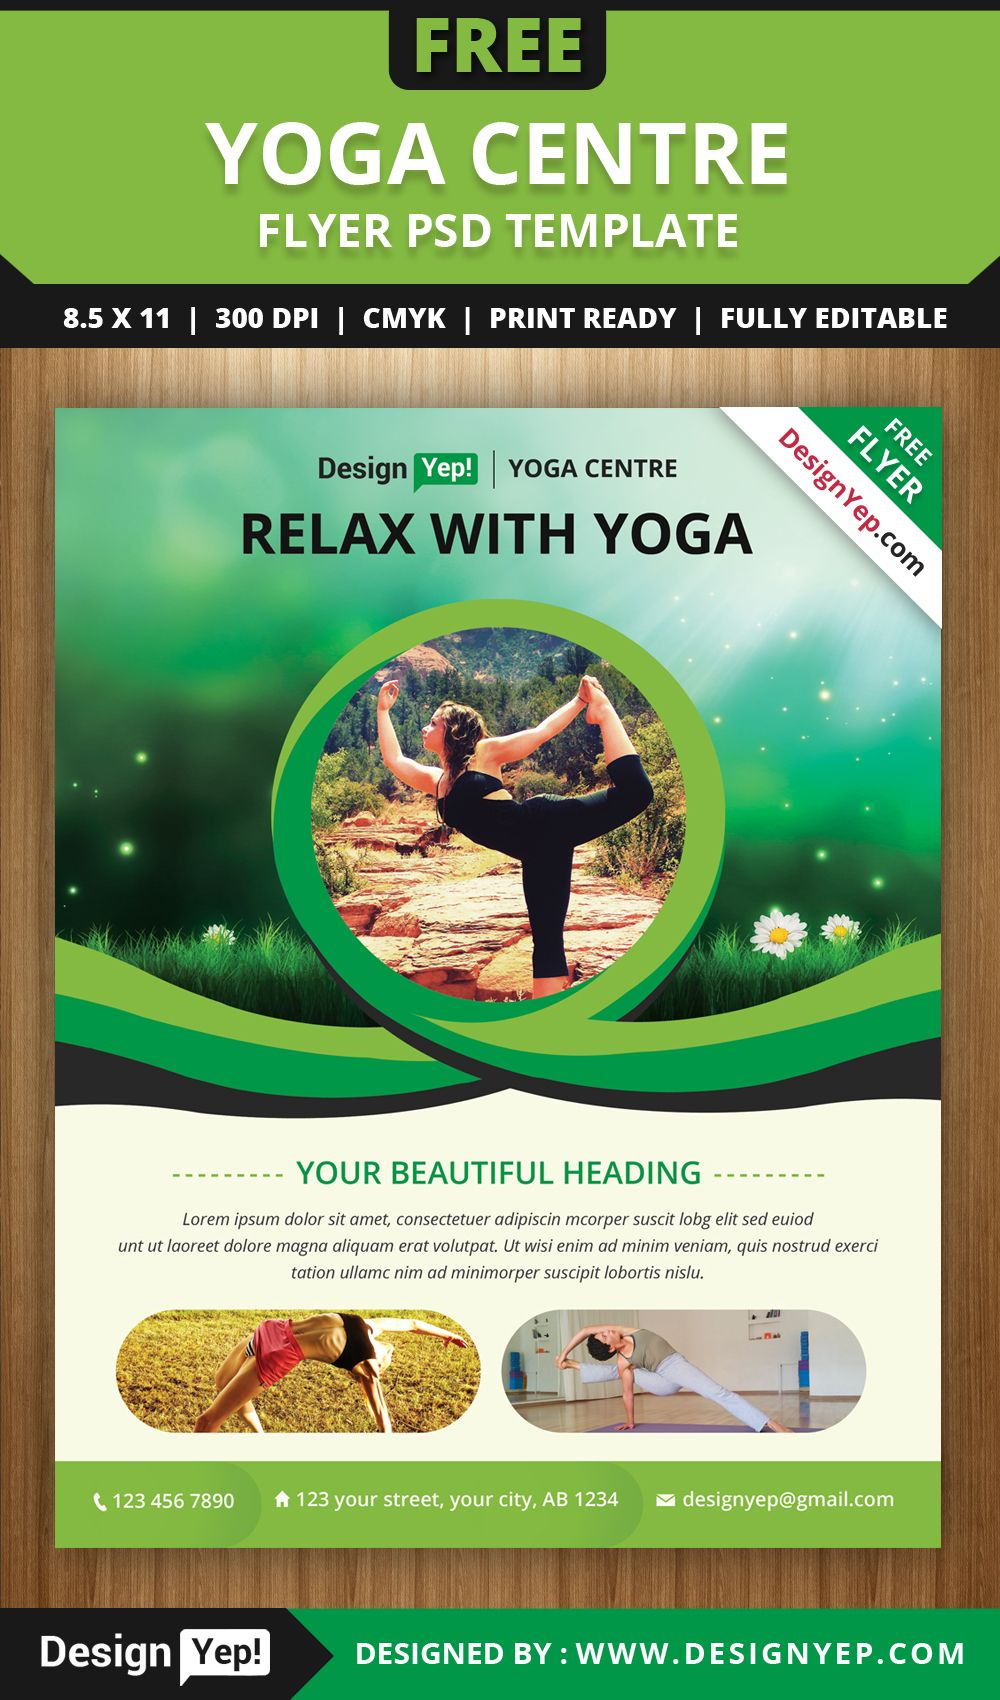 free yoga flyer psd template for download free flyers pinterest